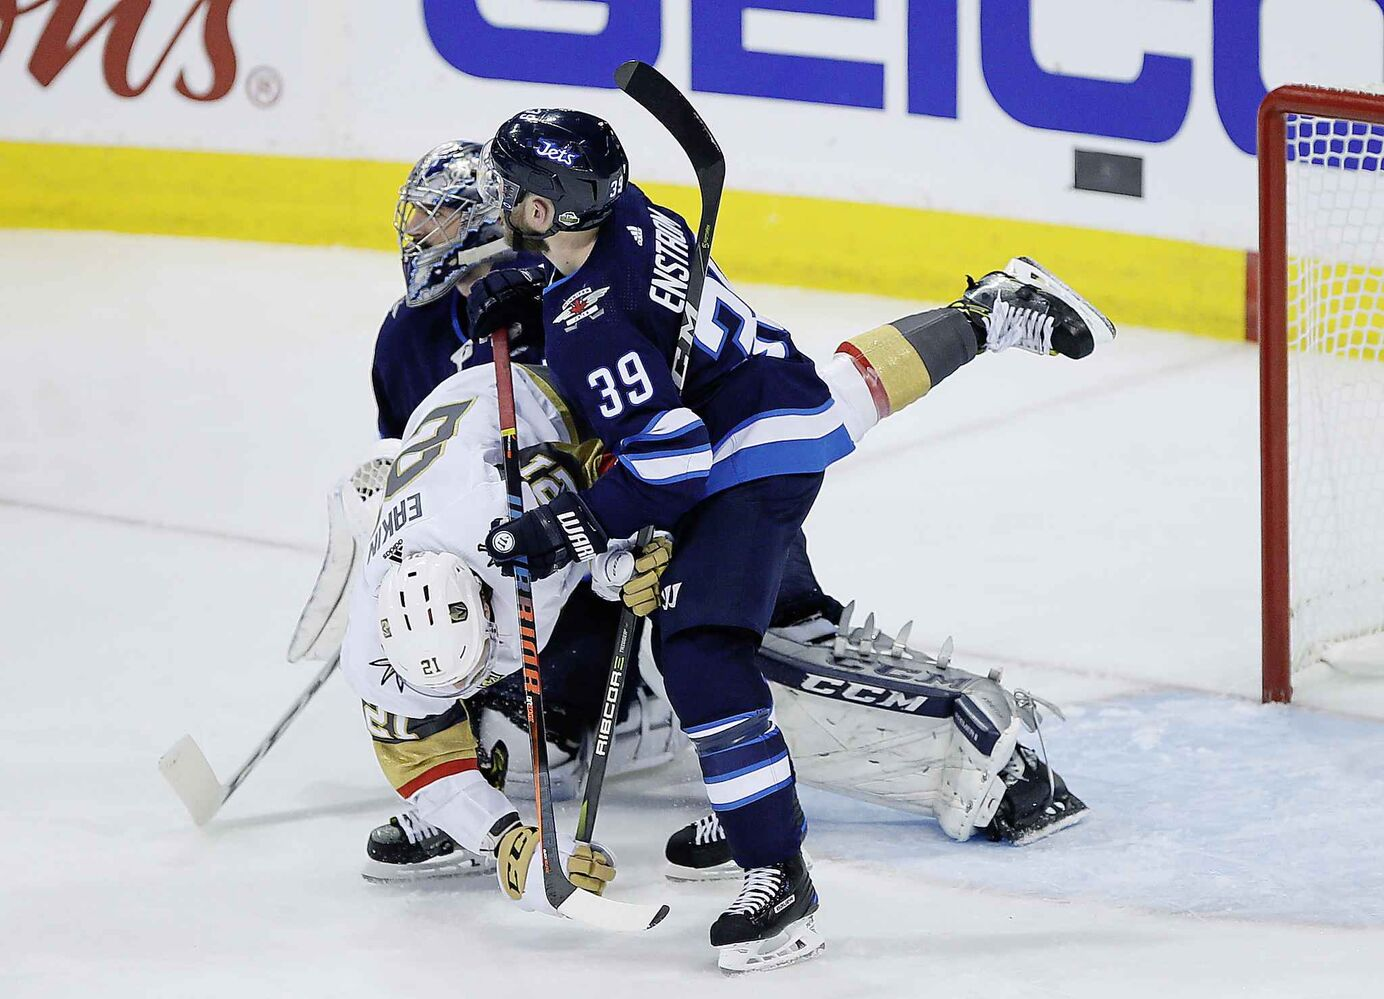 JOHN WOODS / THE CANADIAN PRESS</p><pWinnipeg Jets' Toby Enstrom (39) takes Vegas Golden Knights' Cody Eakin (21) out of the play in front of goaltender Connor Hellebuyck (37) during third period of game one action in the NHL Western Conference Final in Winnipeg on Saturday, May 12, 2018.</p>